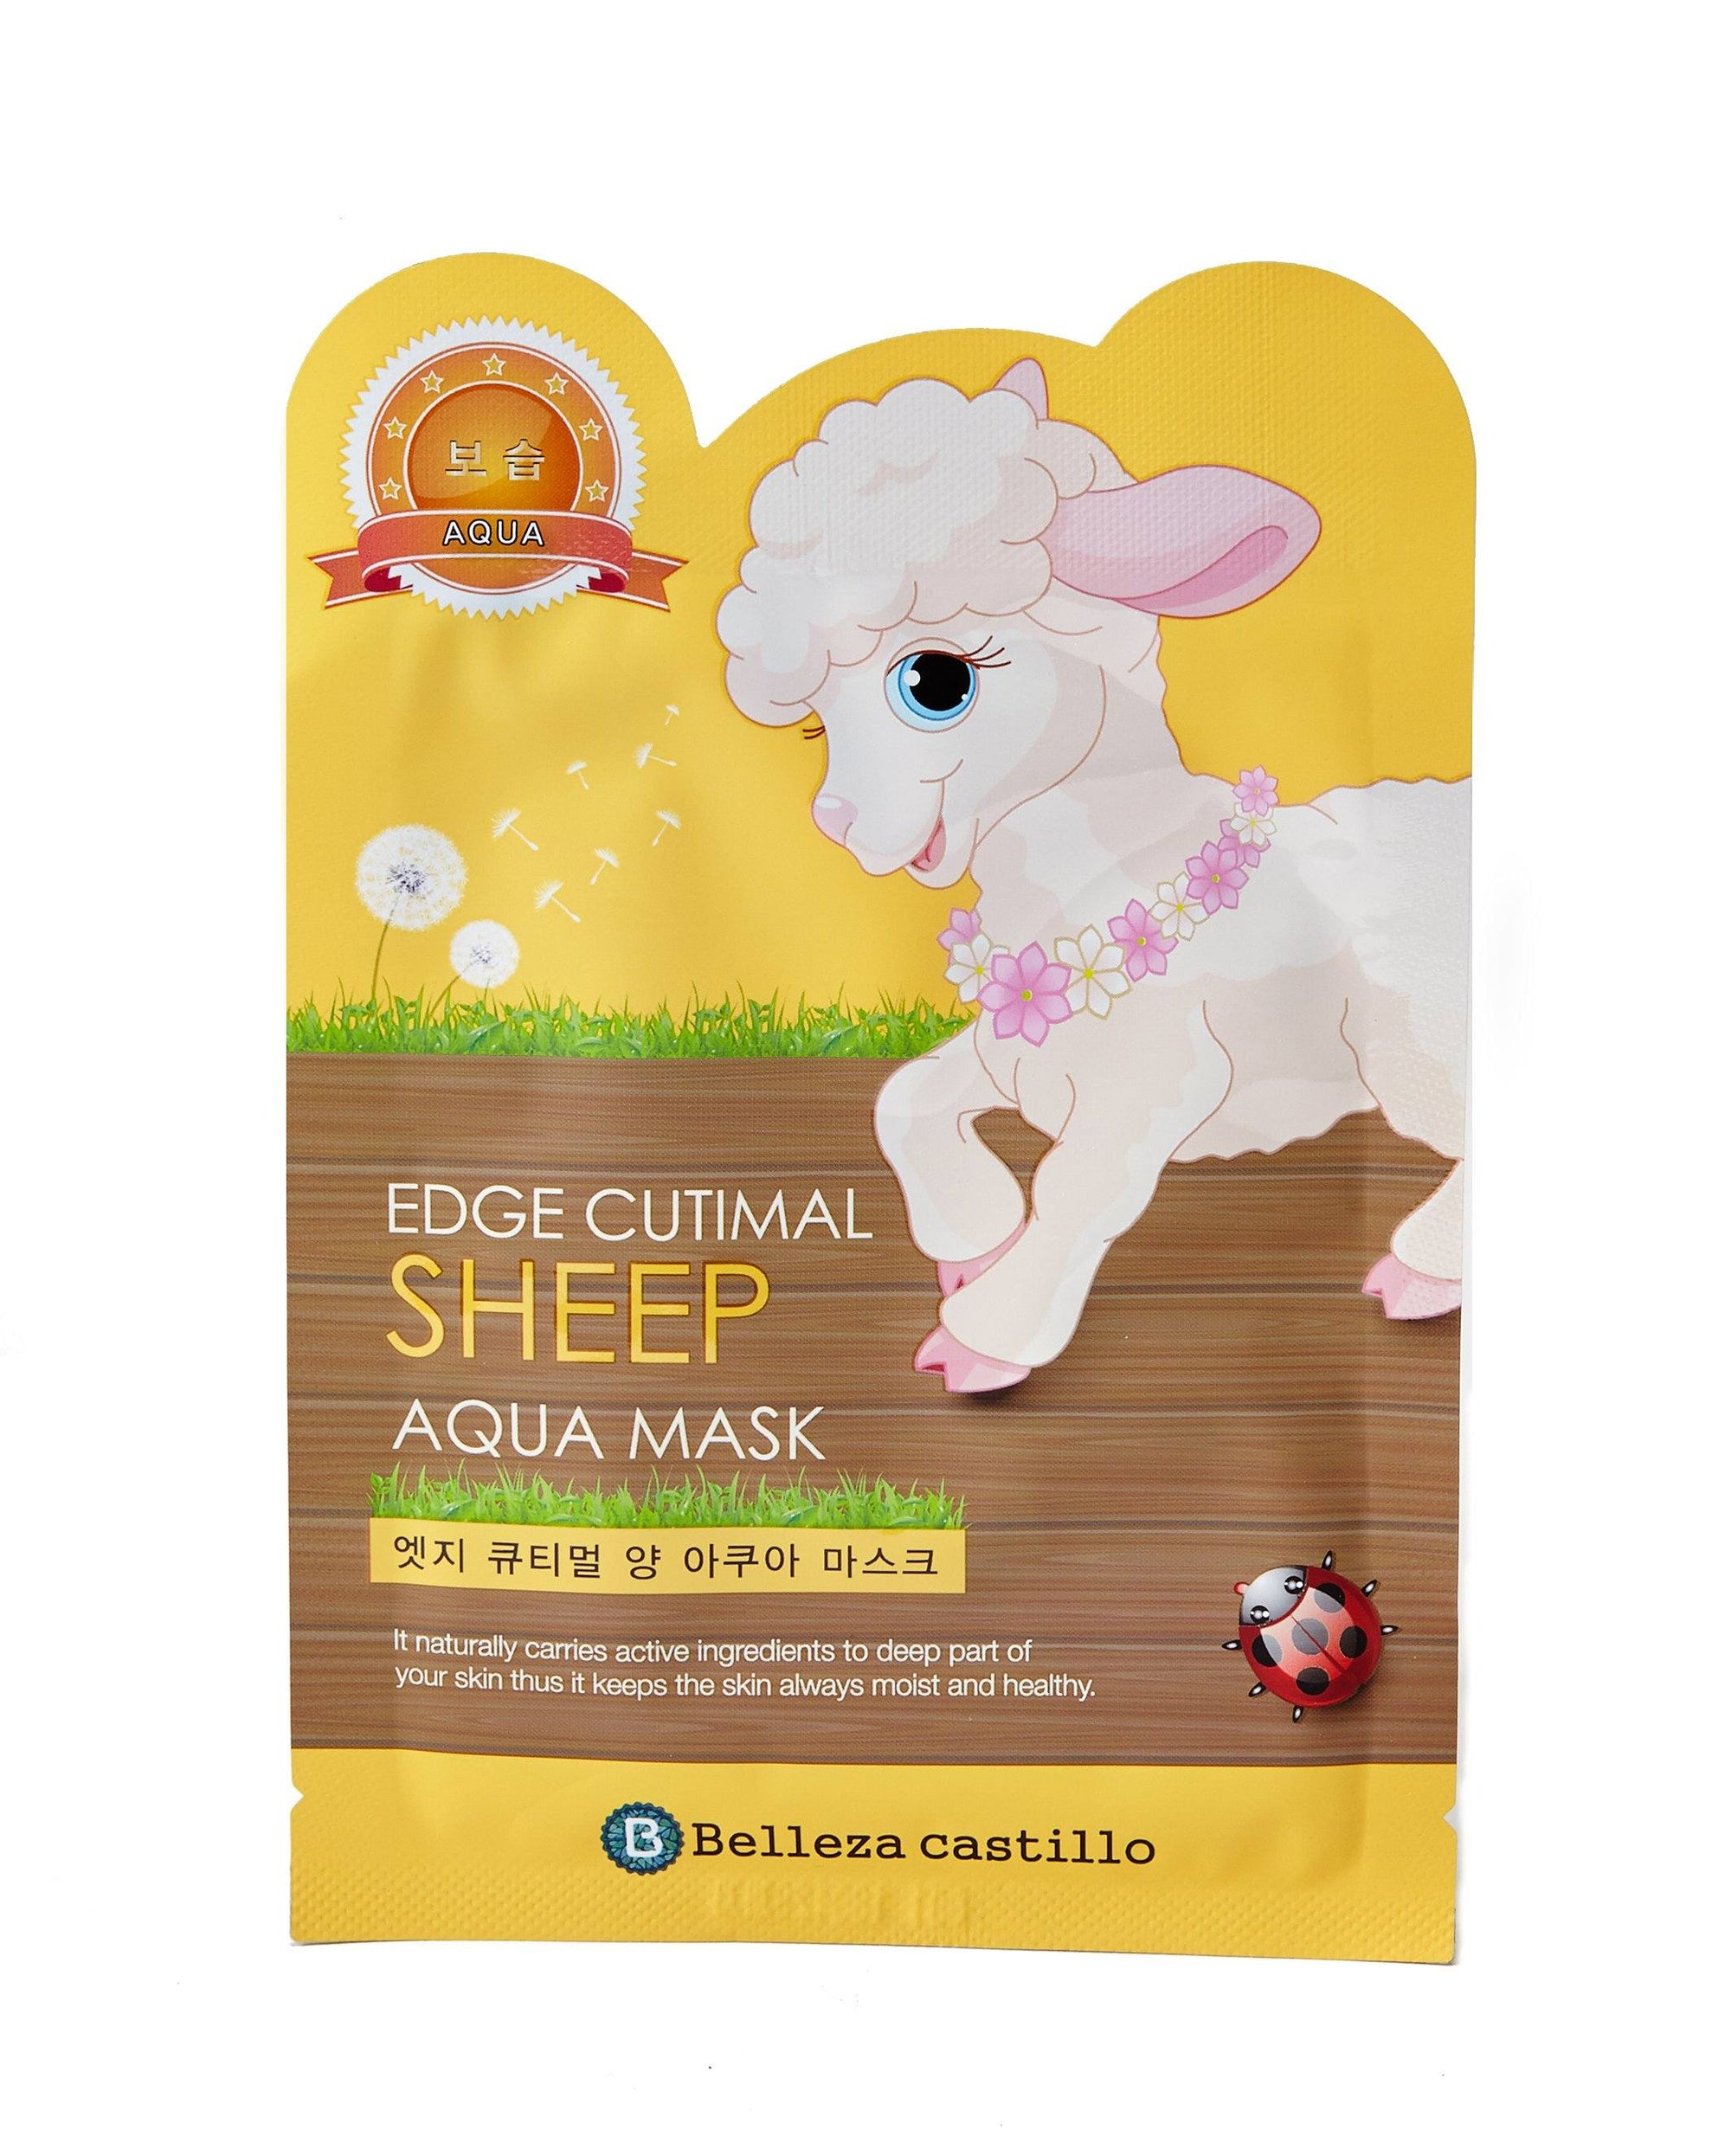 Health & Beauty > Personal Care > Cosmetics > Skin Care > Compressed Skin Care Mask Sheets - Edge Cutimal SHEEP Aqua Mask Maska W Płachcie